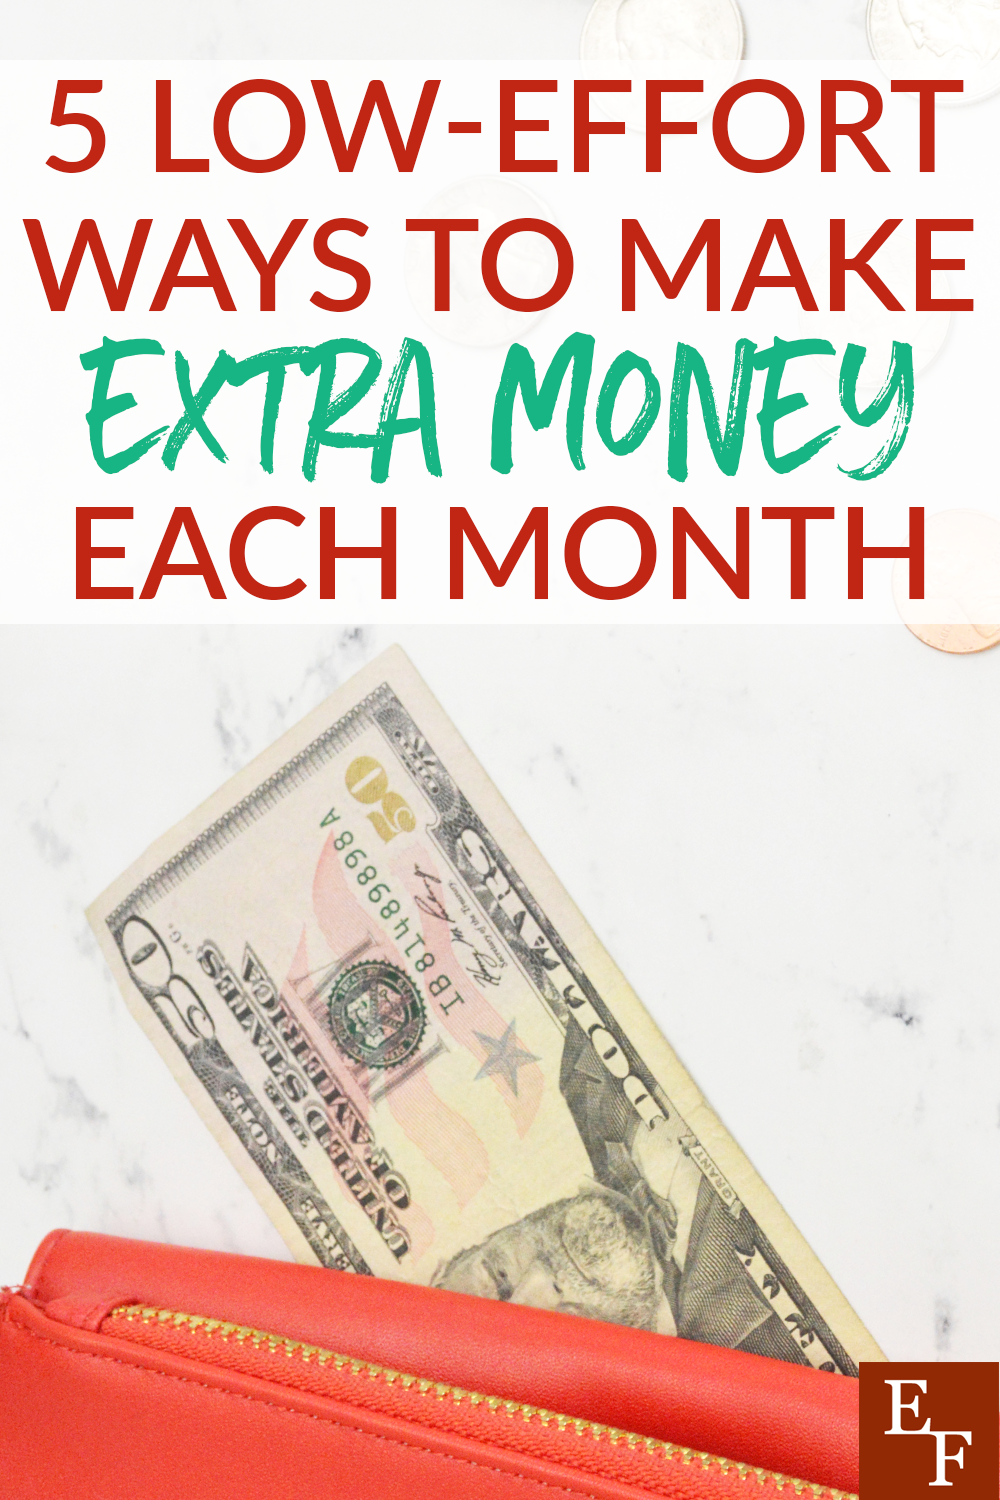 Bringing extra income into your home doesn't have to be difficult. We have listed some low effort ways to make extra money on the side.